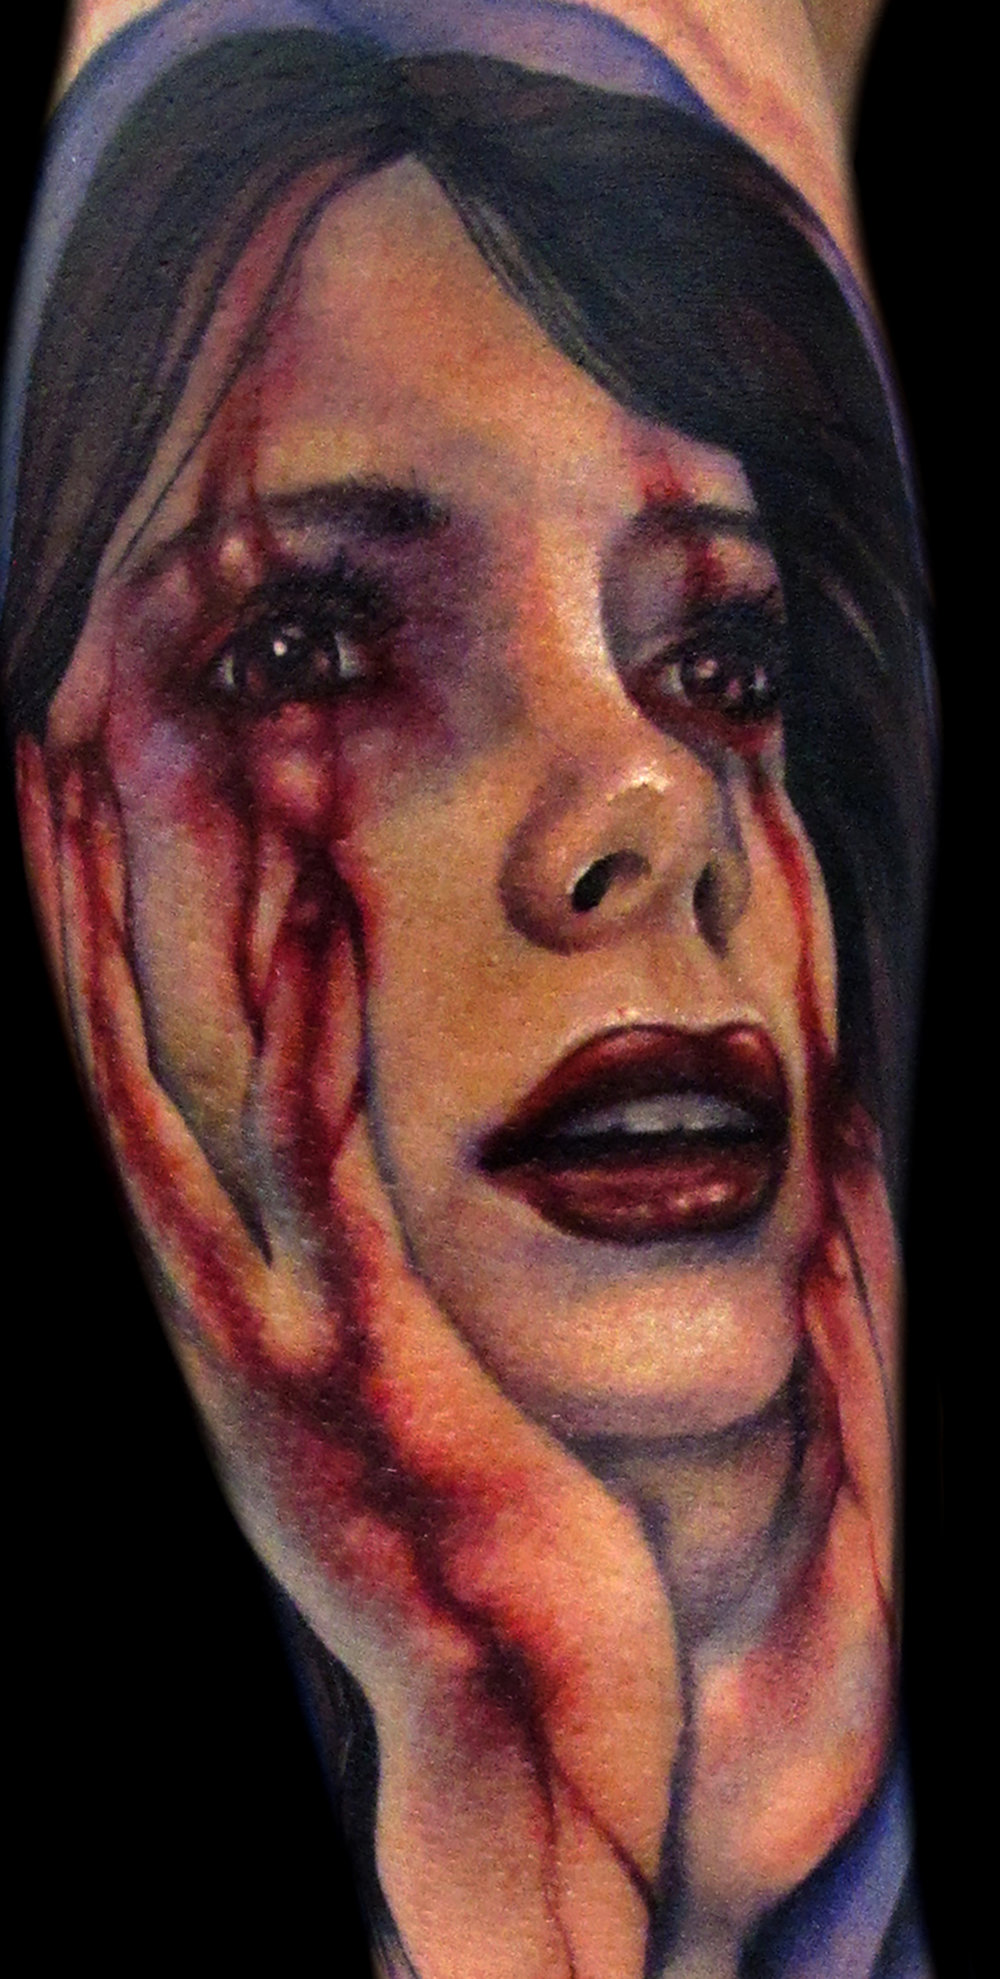 Liz Cook Tattoo Blood Hands Virgin Mary Horror Realistic Color Portrait.jpg